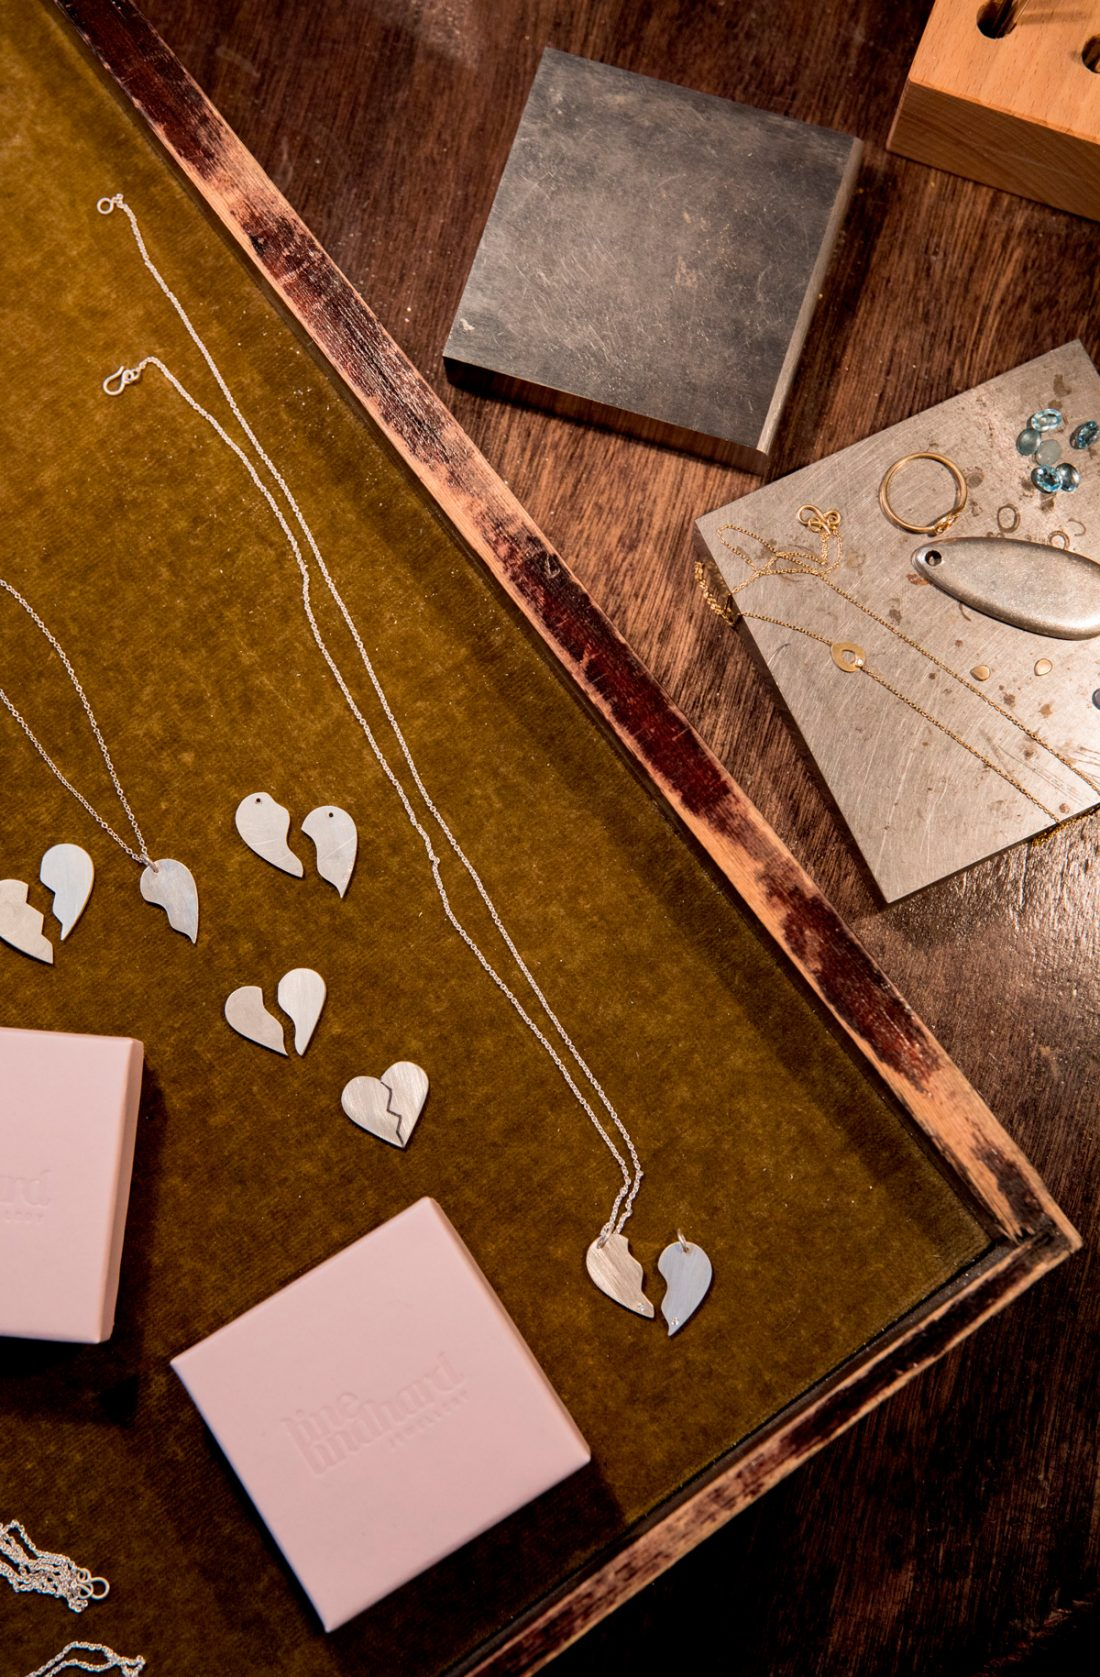 The Heart friendship necklace